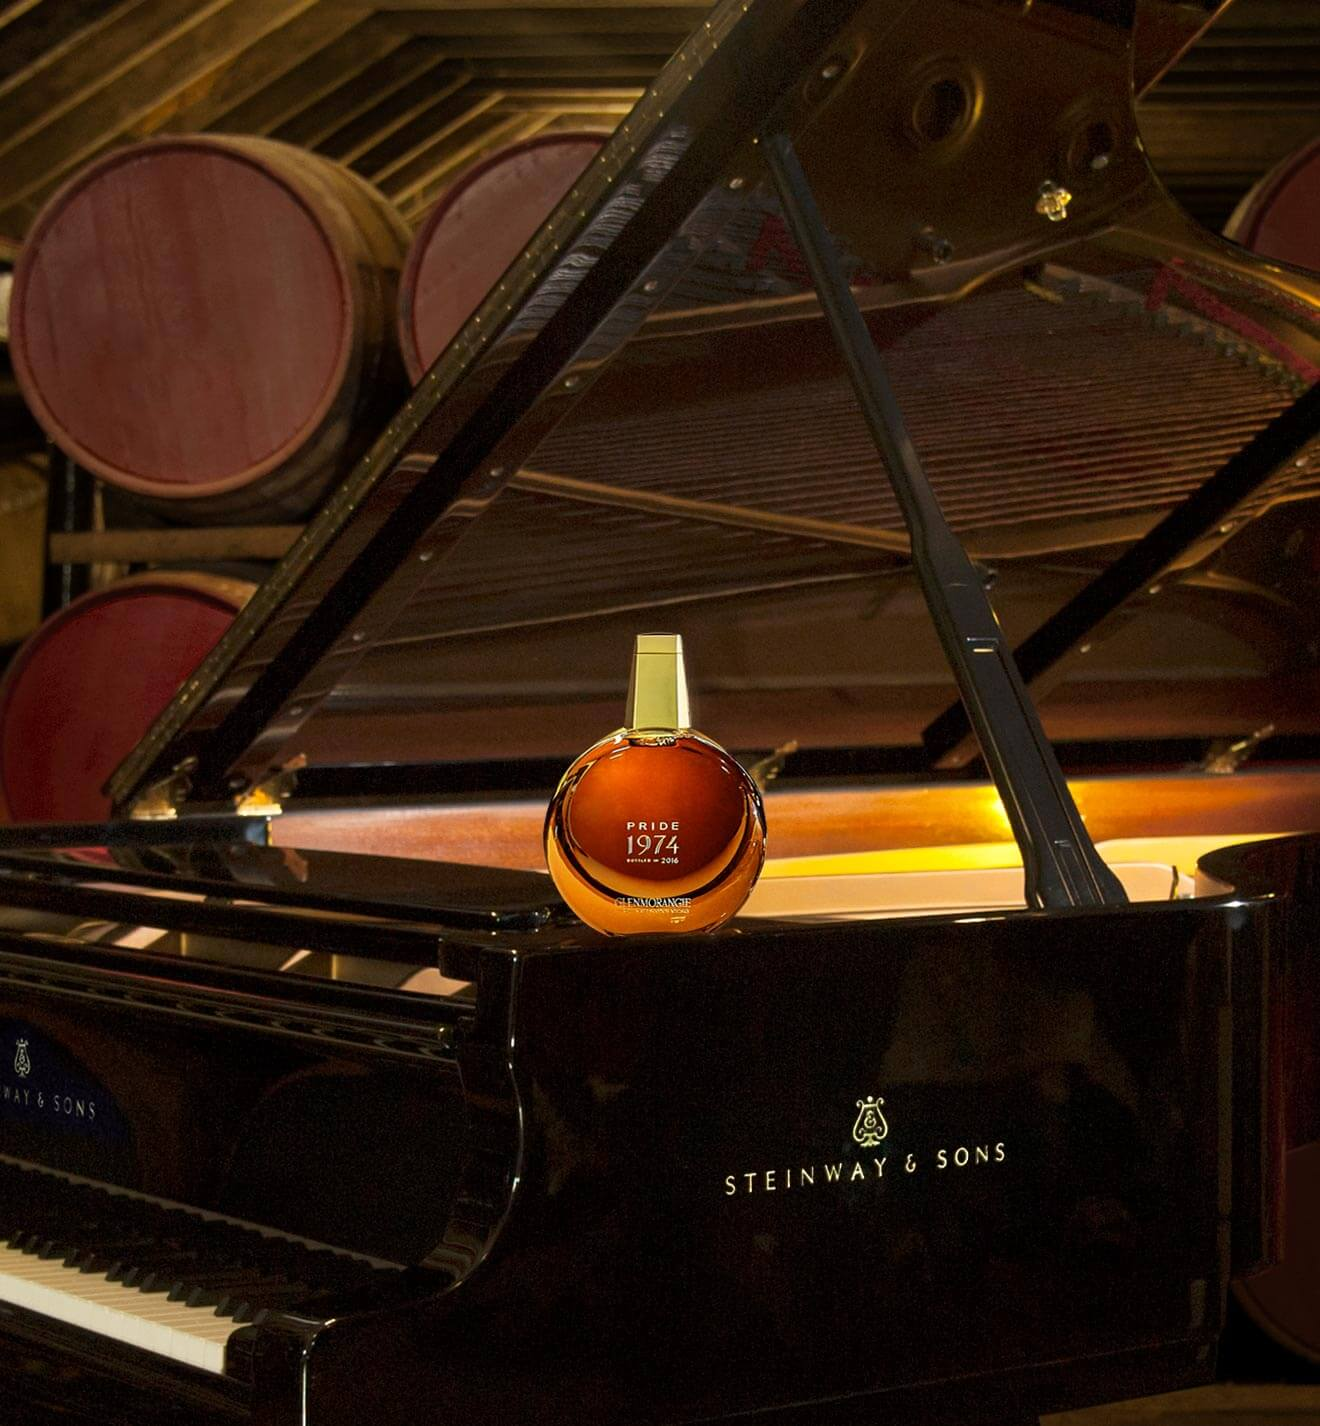 Pride 1974 with Steinway & Sons piano